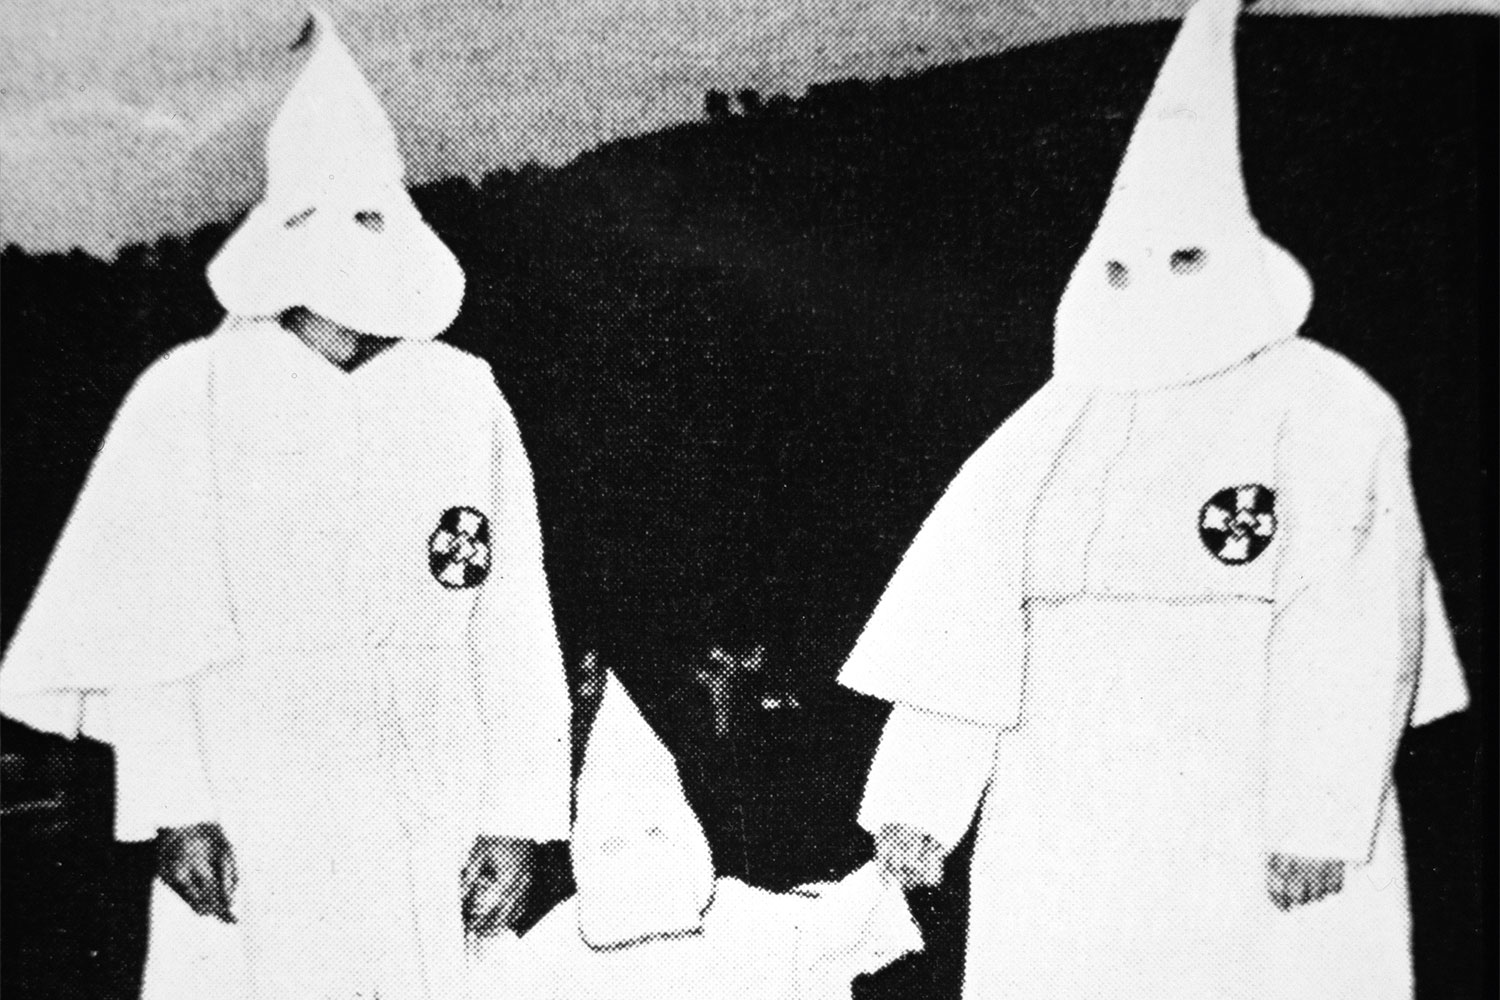 an overview of the anarchy organization the ku klux klan The ku klux klan, founded shortly after the civil war with the purpose of terrorizing and killing former slaves, came back to life after the 1915 premier of the film the birth of a nation in which the klan portrayed itself as saving white culture and civilization.